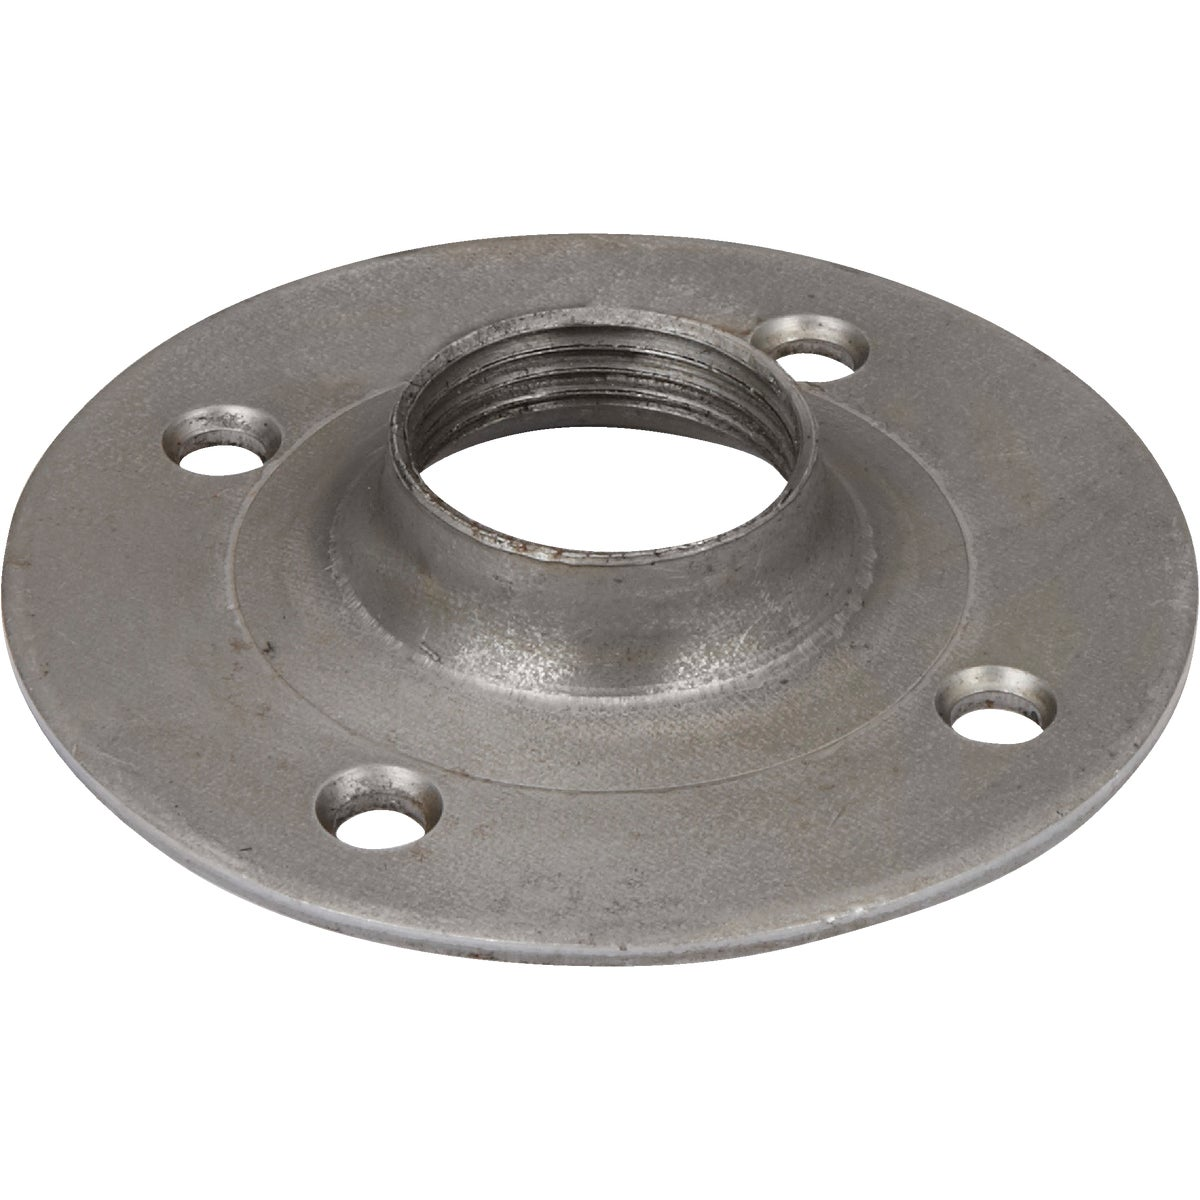 "1-1/2""STEEL FLOOR FLANGE -  by Western Reserve Mfg"